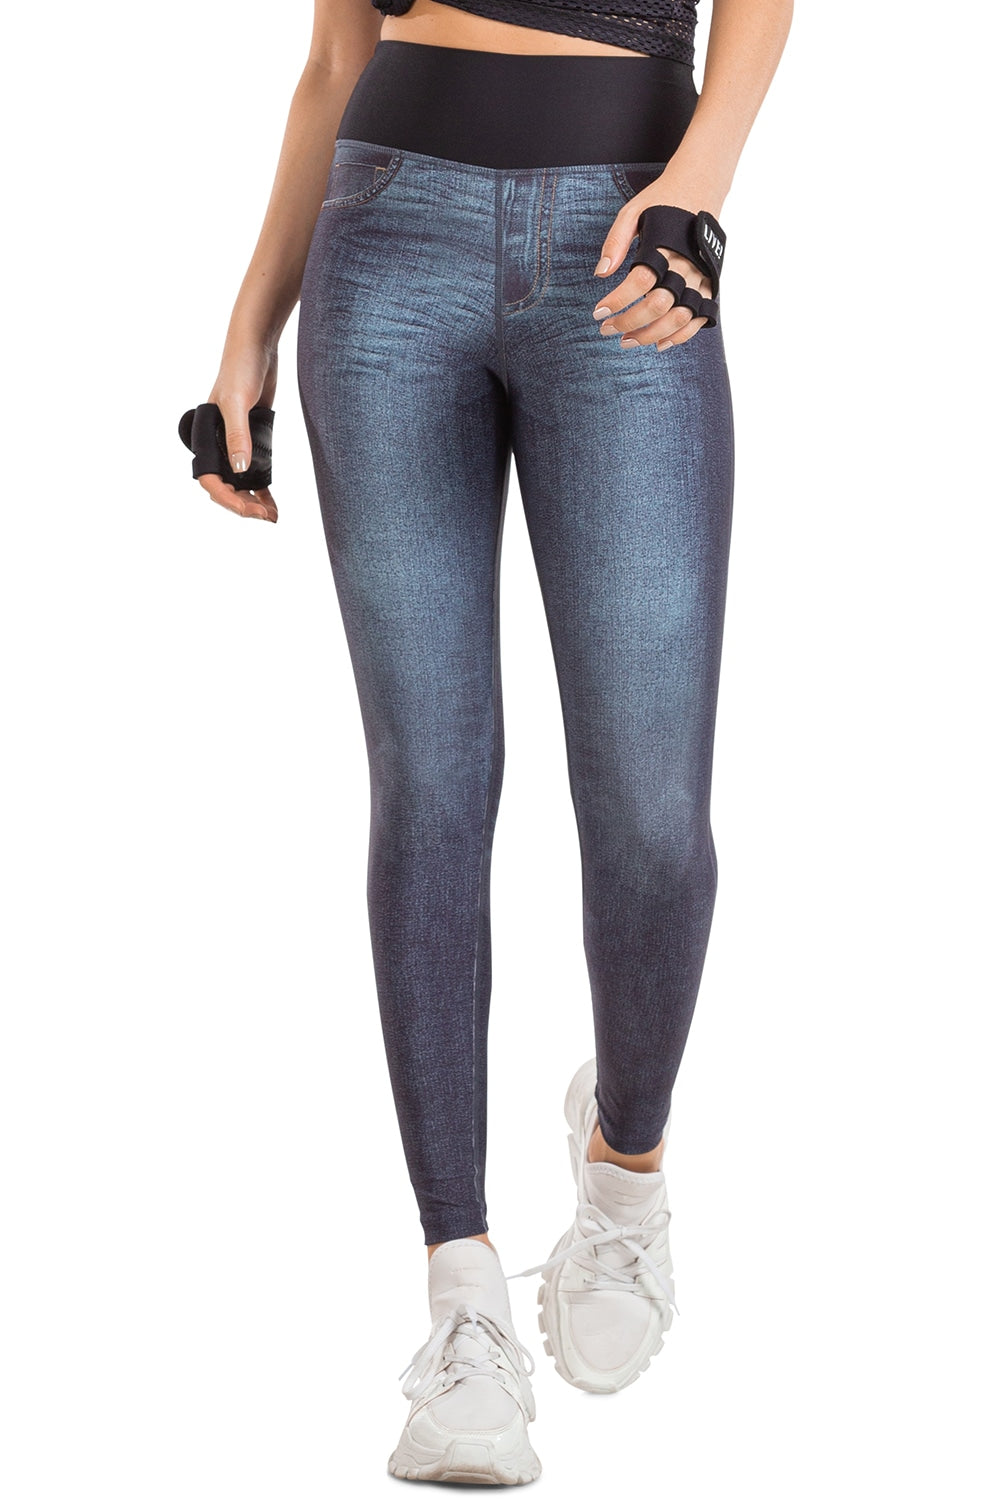 Fresh Lines Reversible Denim Legging 1